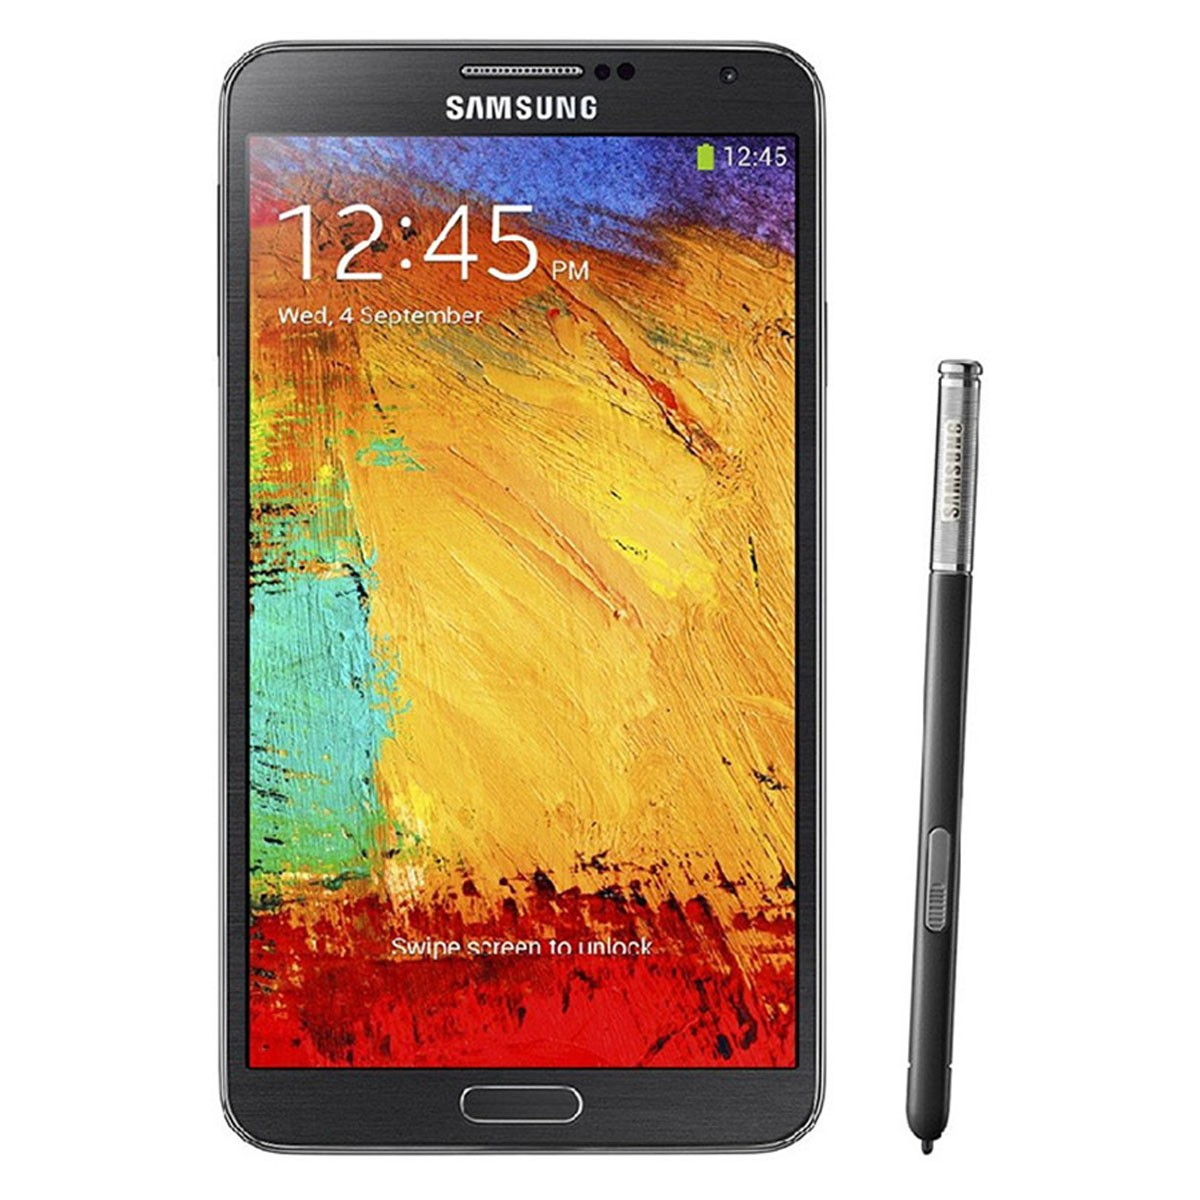 Samsung Galaxy Note 3 Neo Duos N7502 16gb 2gb Ram 5.5 Outlet